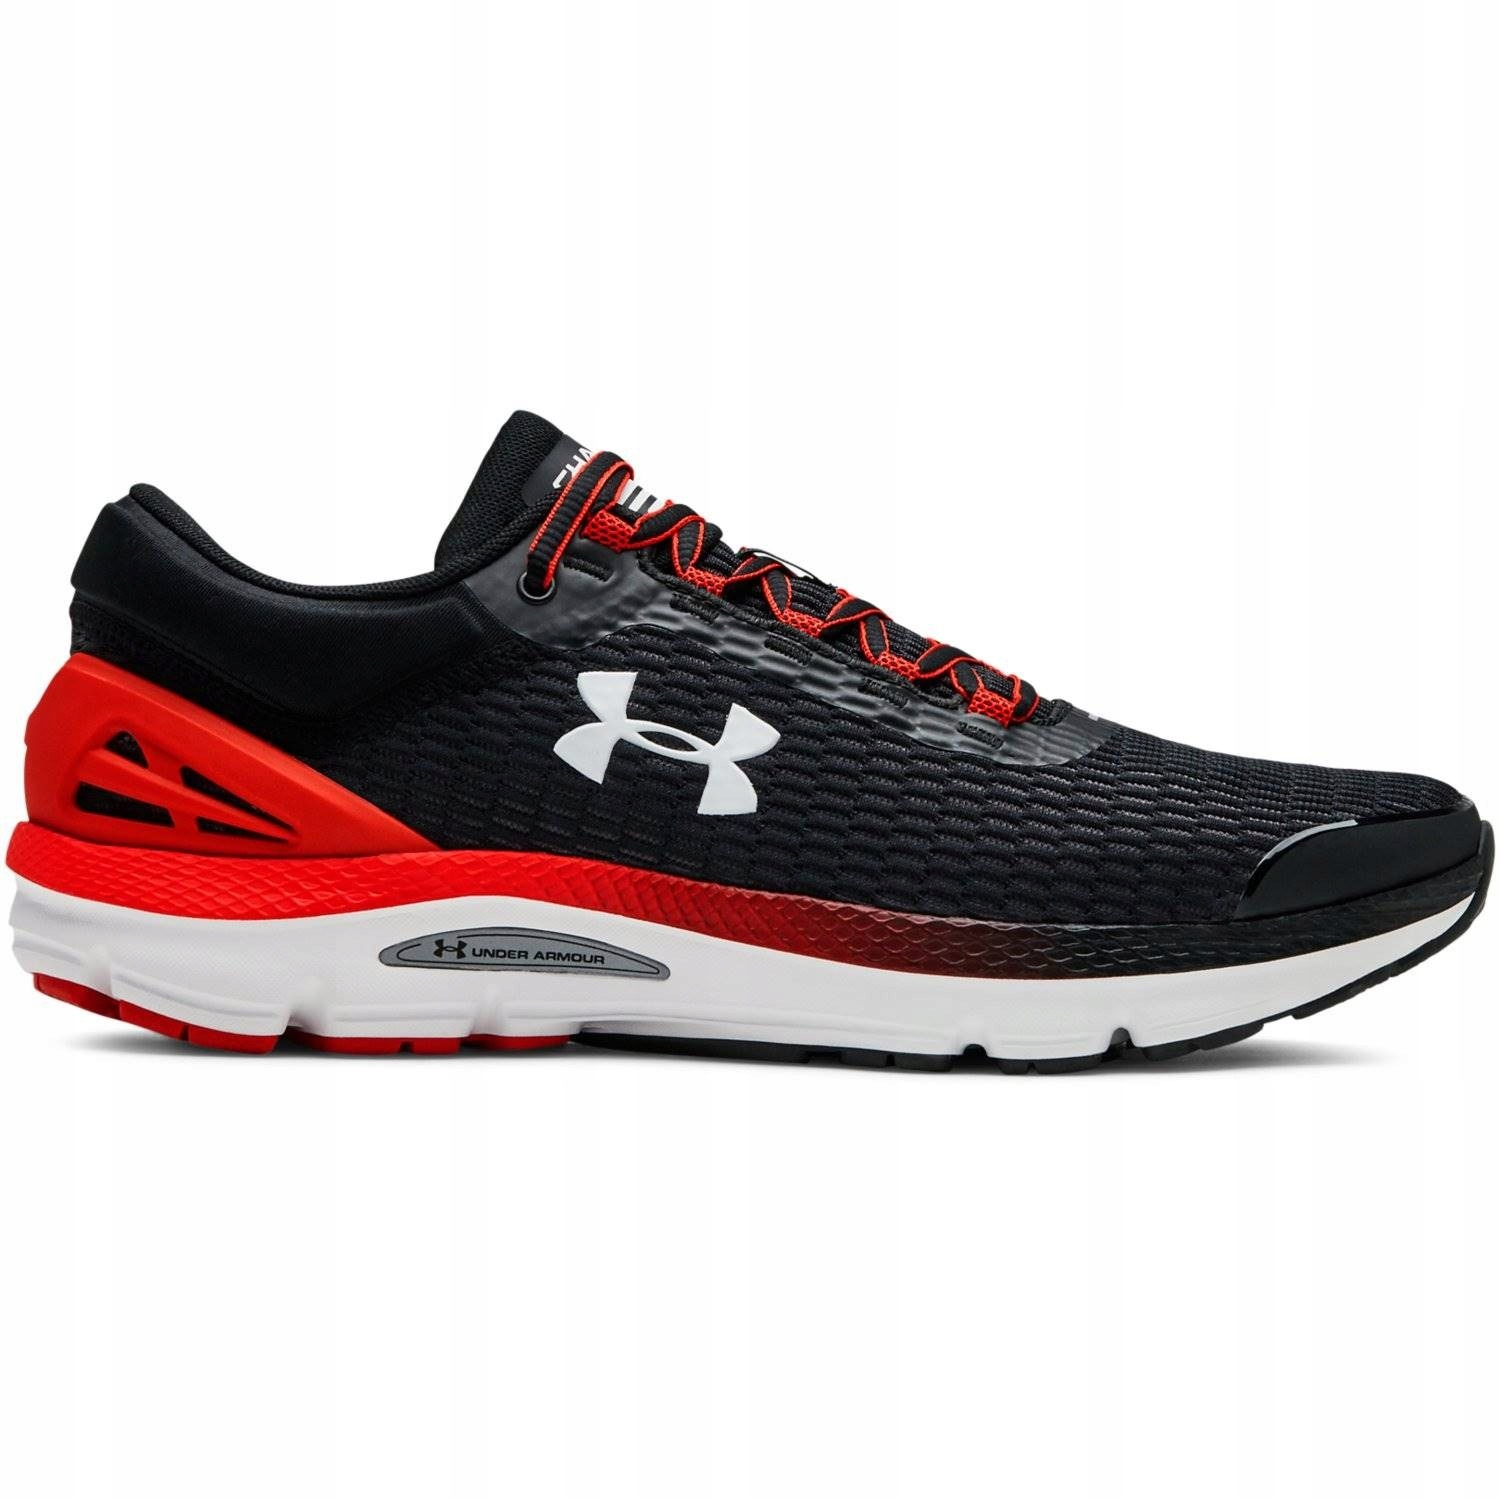 Under Armour obuwie męskie but 3021229-002 SS19 46